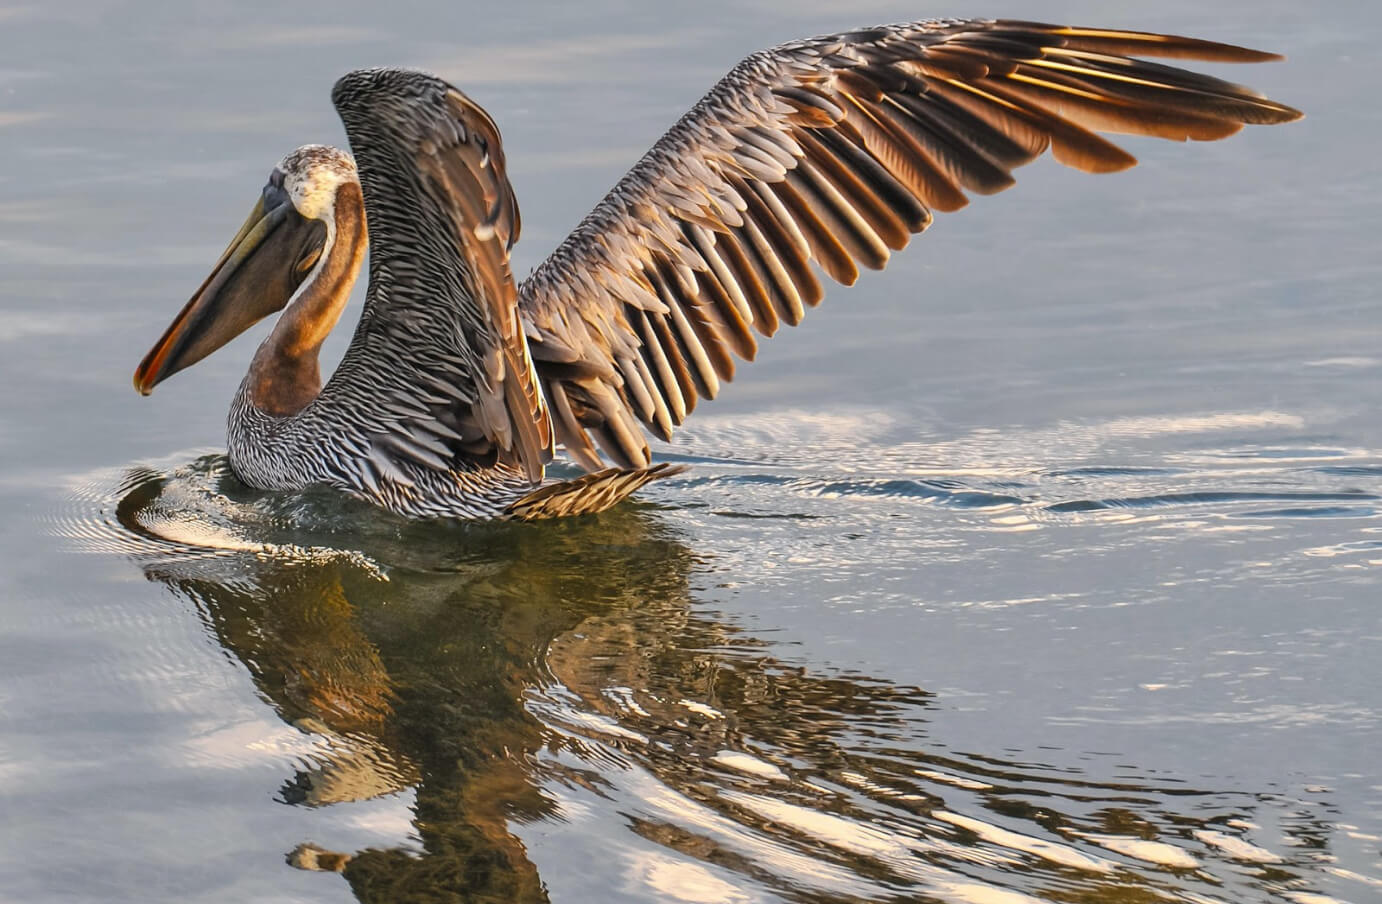 A Brown Pelican sitting in the water, with its wings extended preparing to takeoff for flight